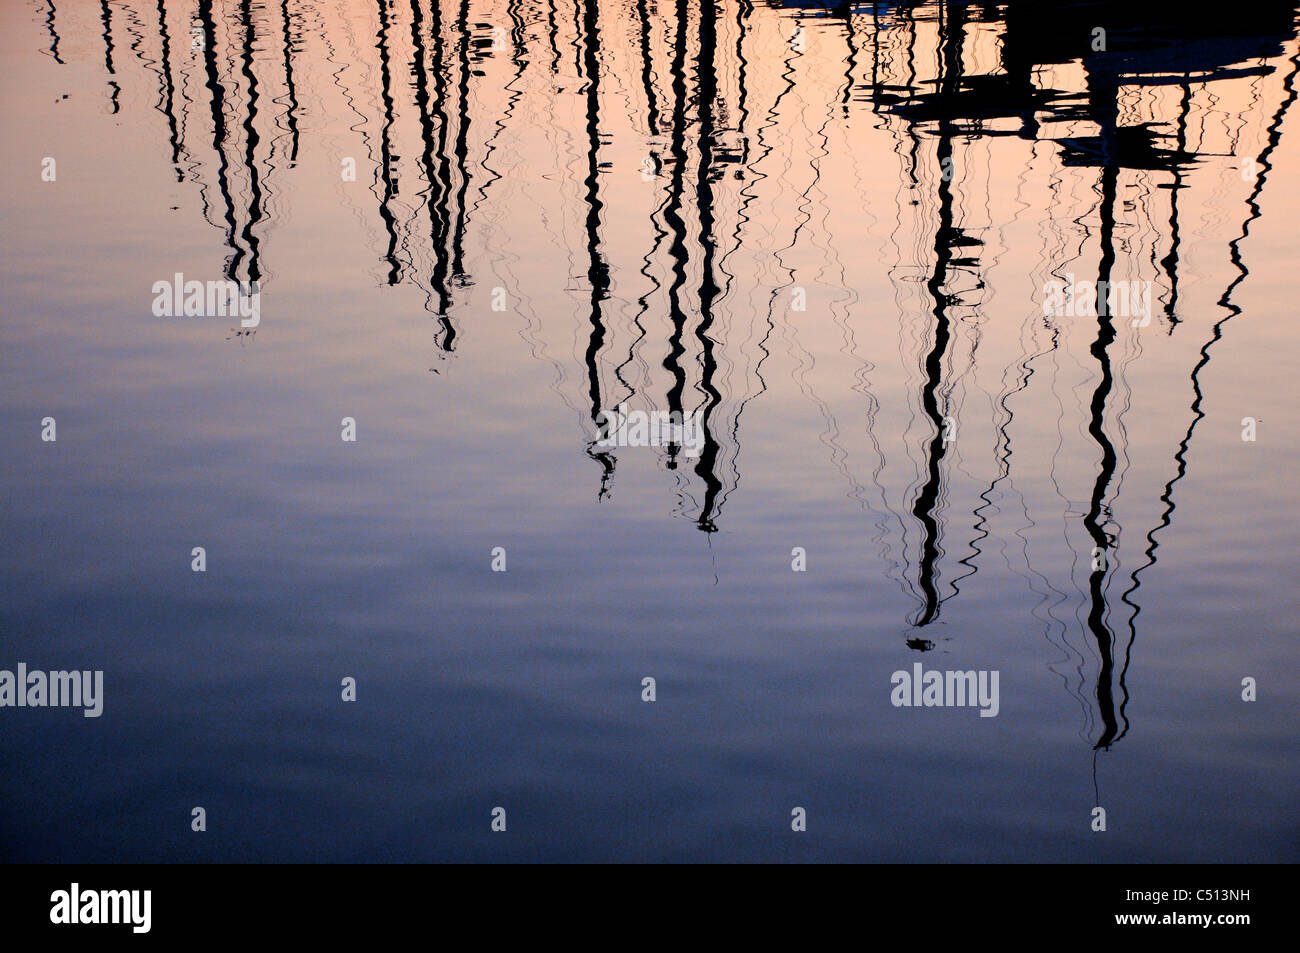 Silhouetted masts reflected on water at sunset - Stock Image